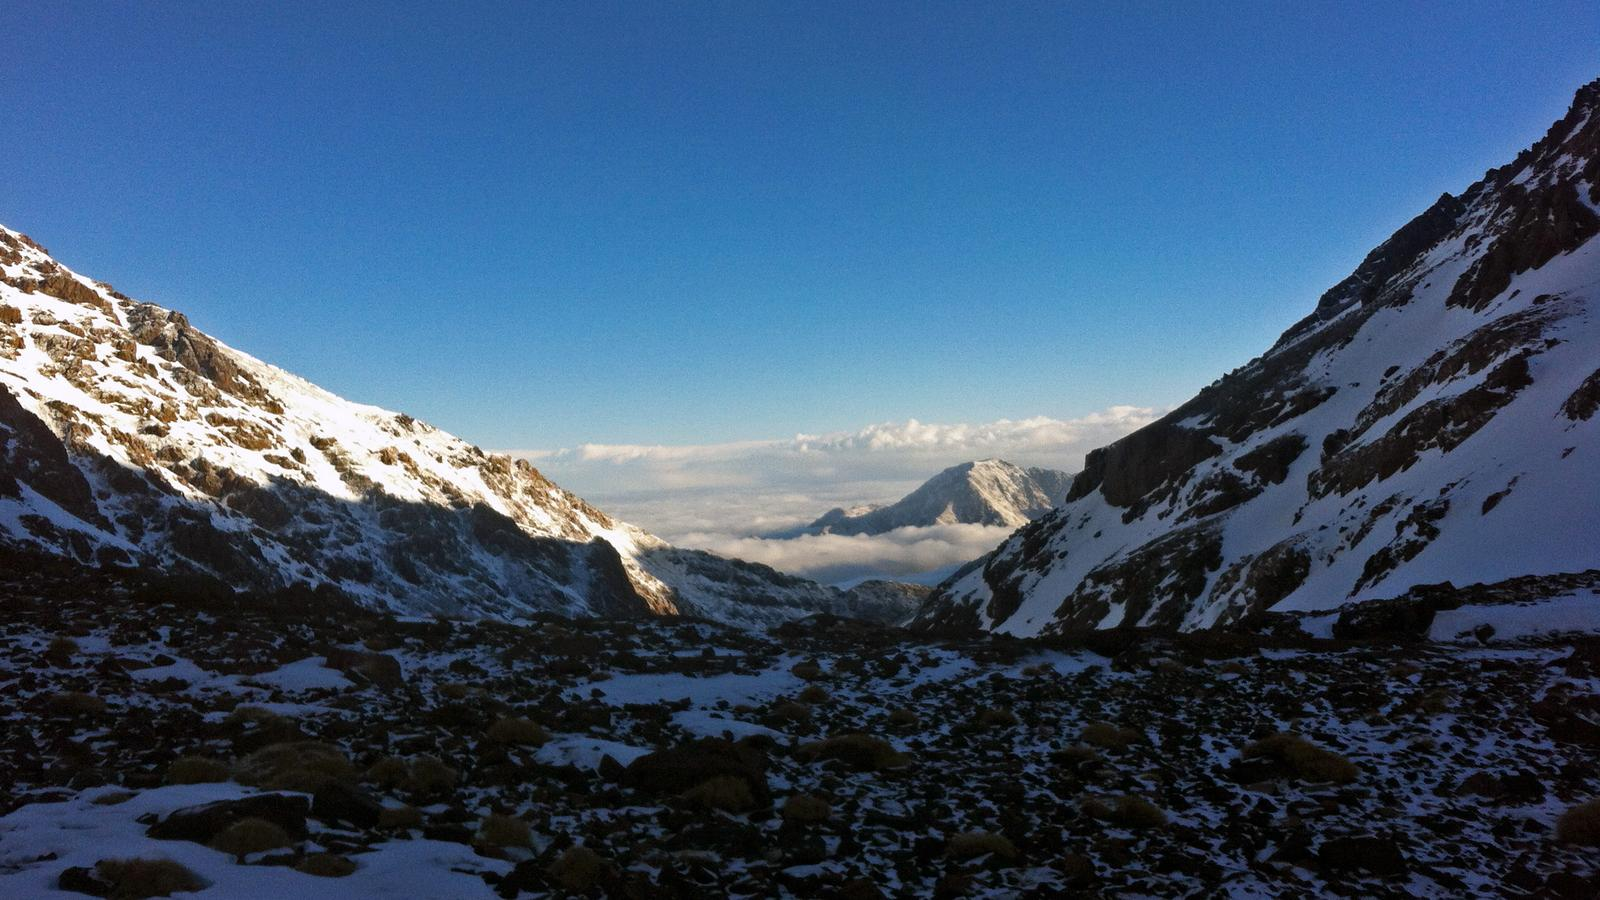 Mt. Toubkal - one of the most exhilarating experiences near Marrakesh.